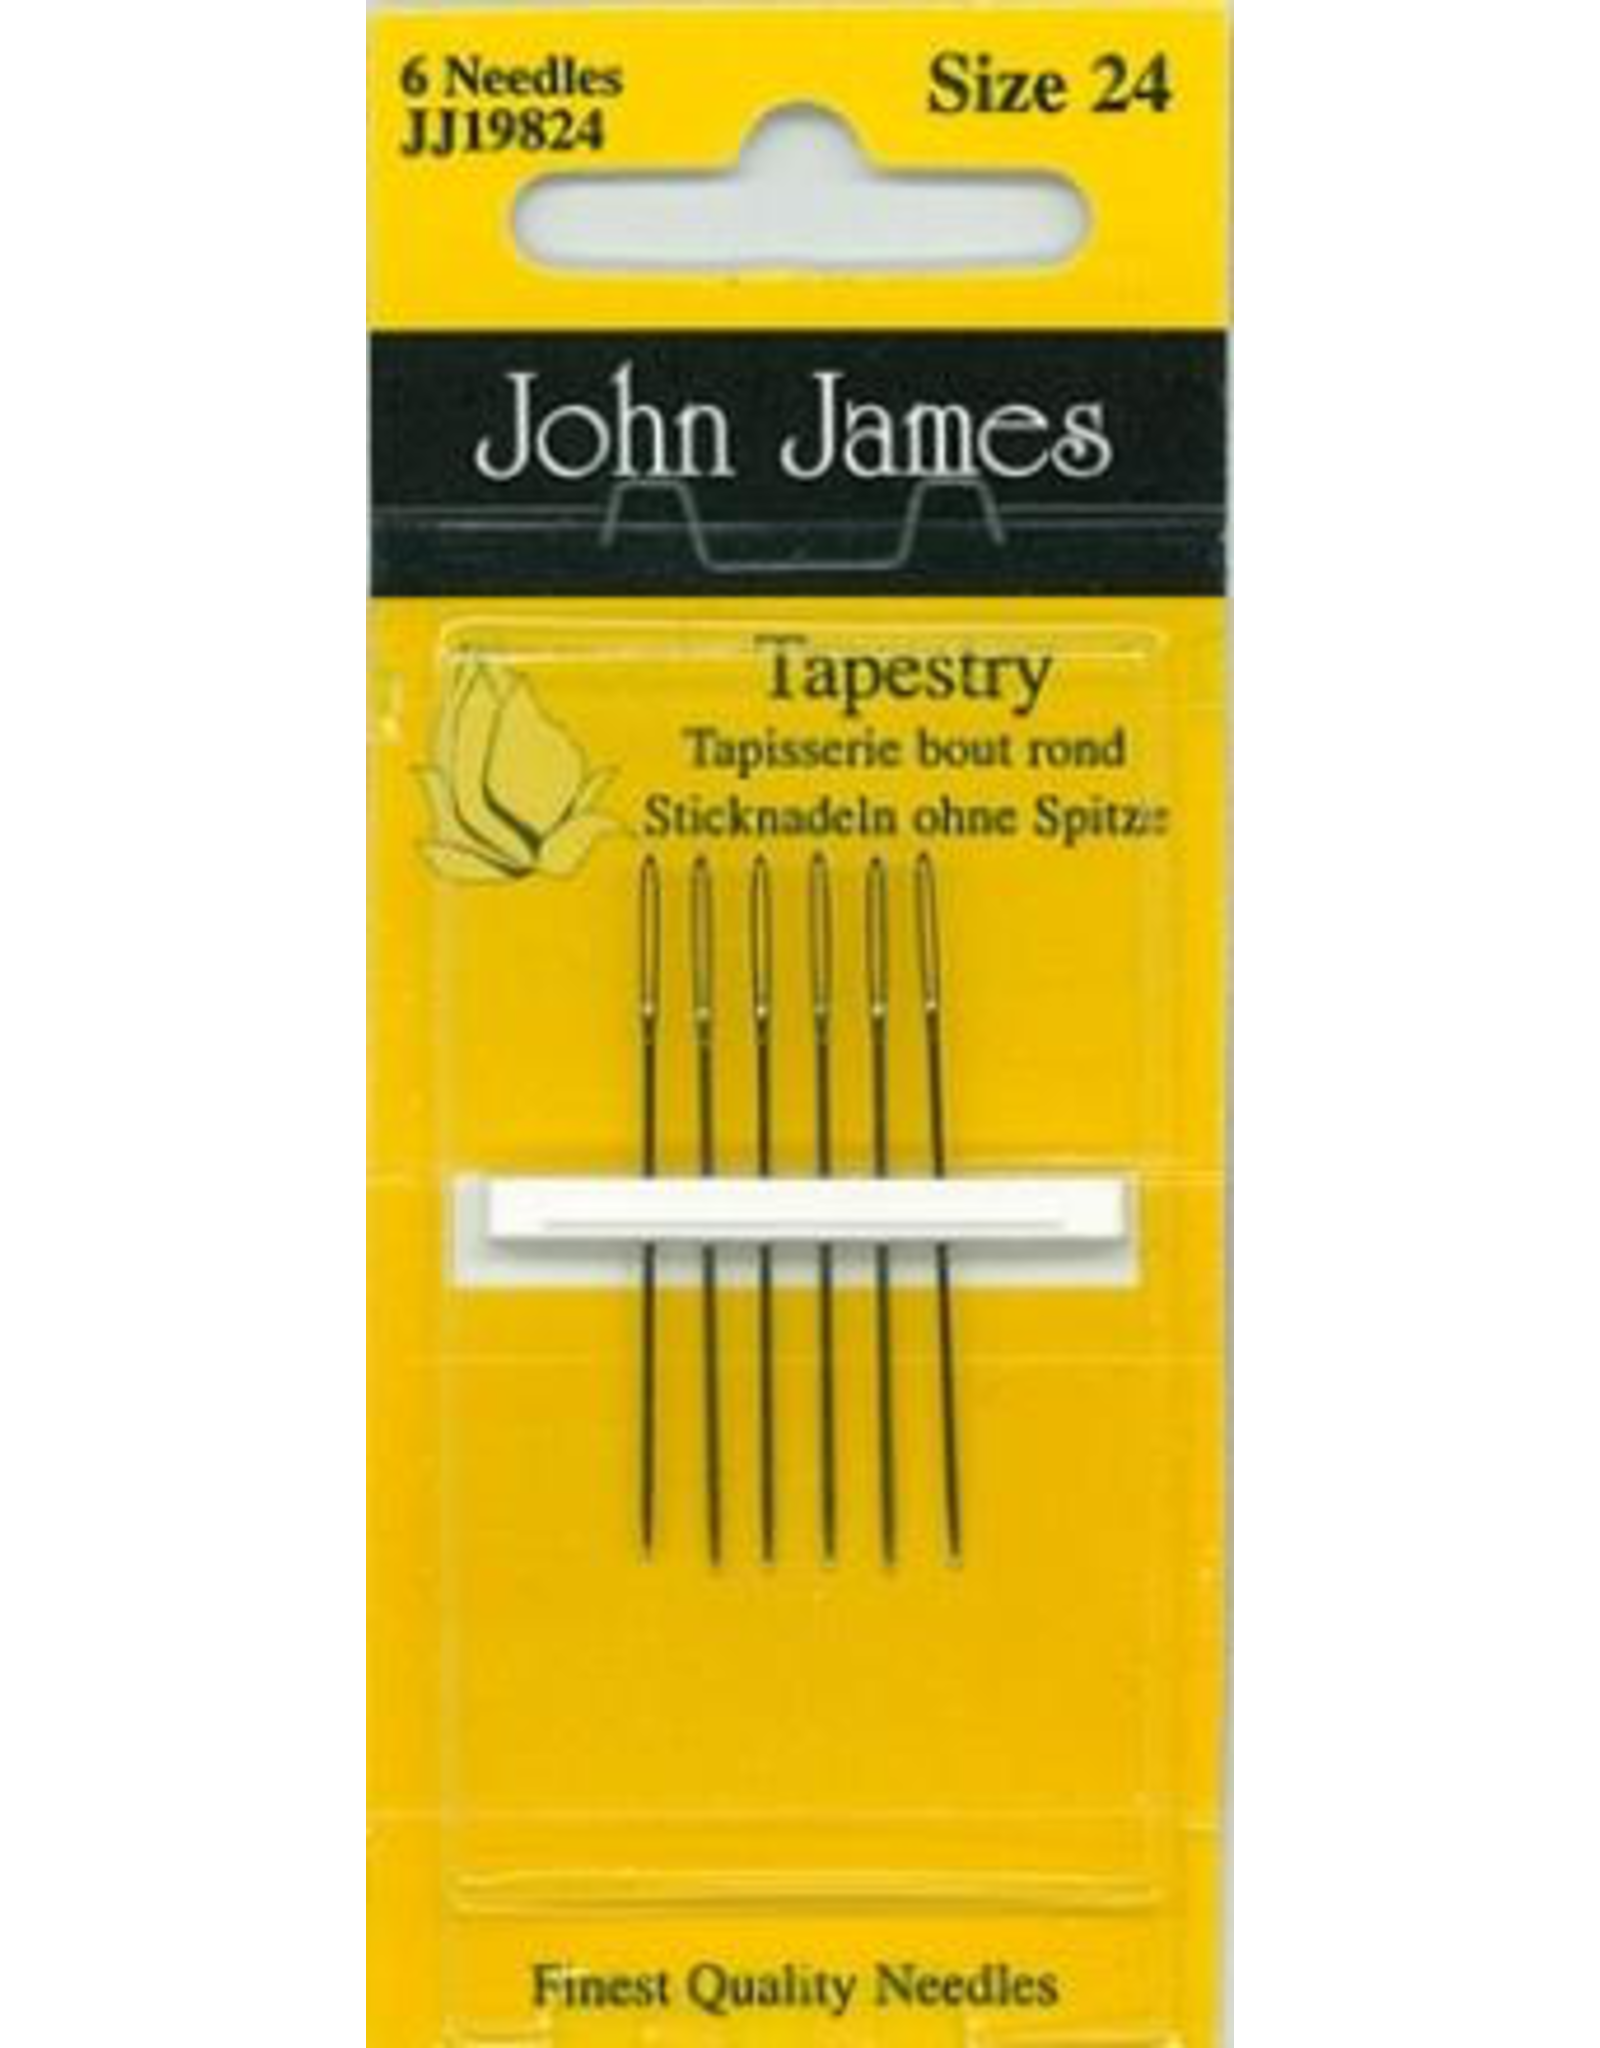 PD John James, Tapestry Needles size 24